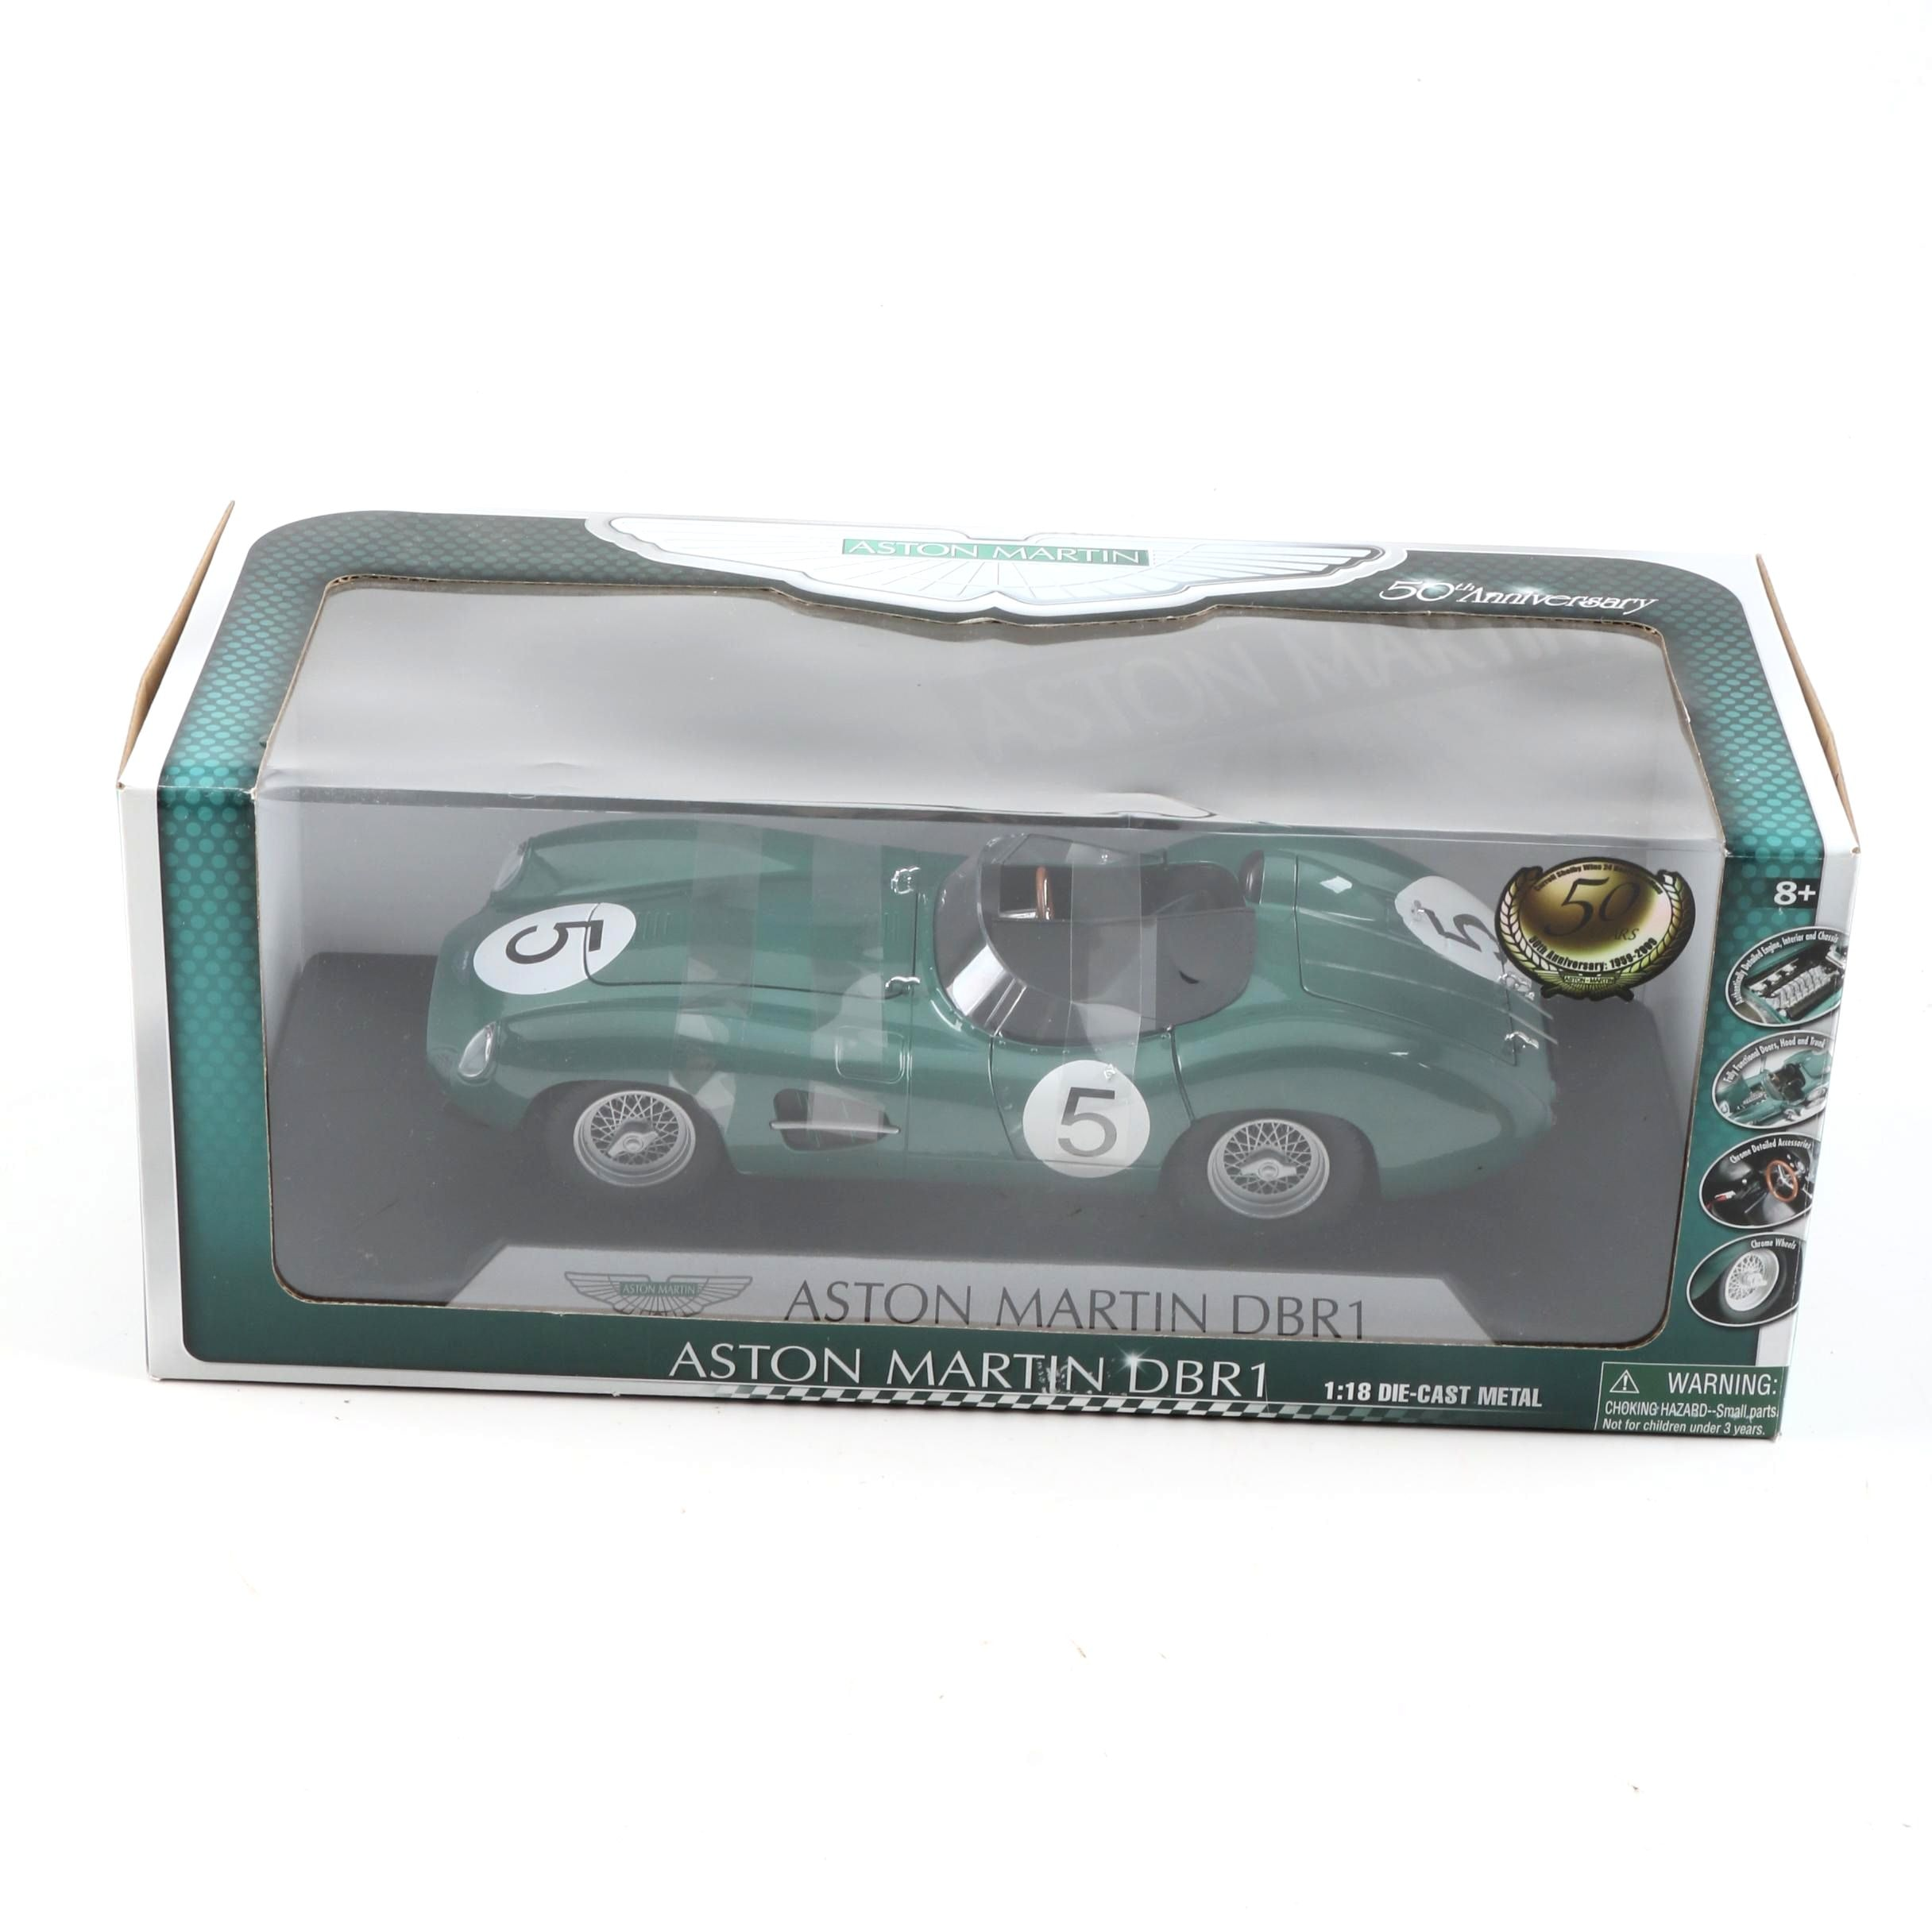 Shelby Aston Martin DBR1 1:18 Scale Die-Cast Car